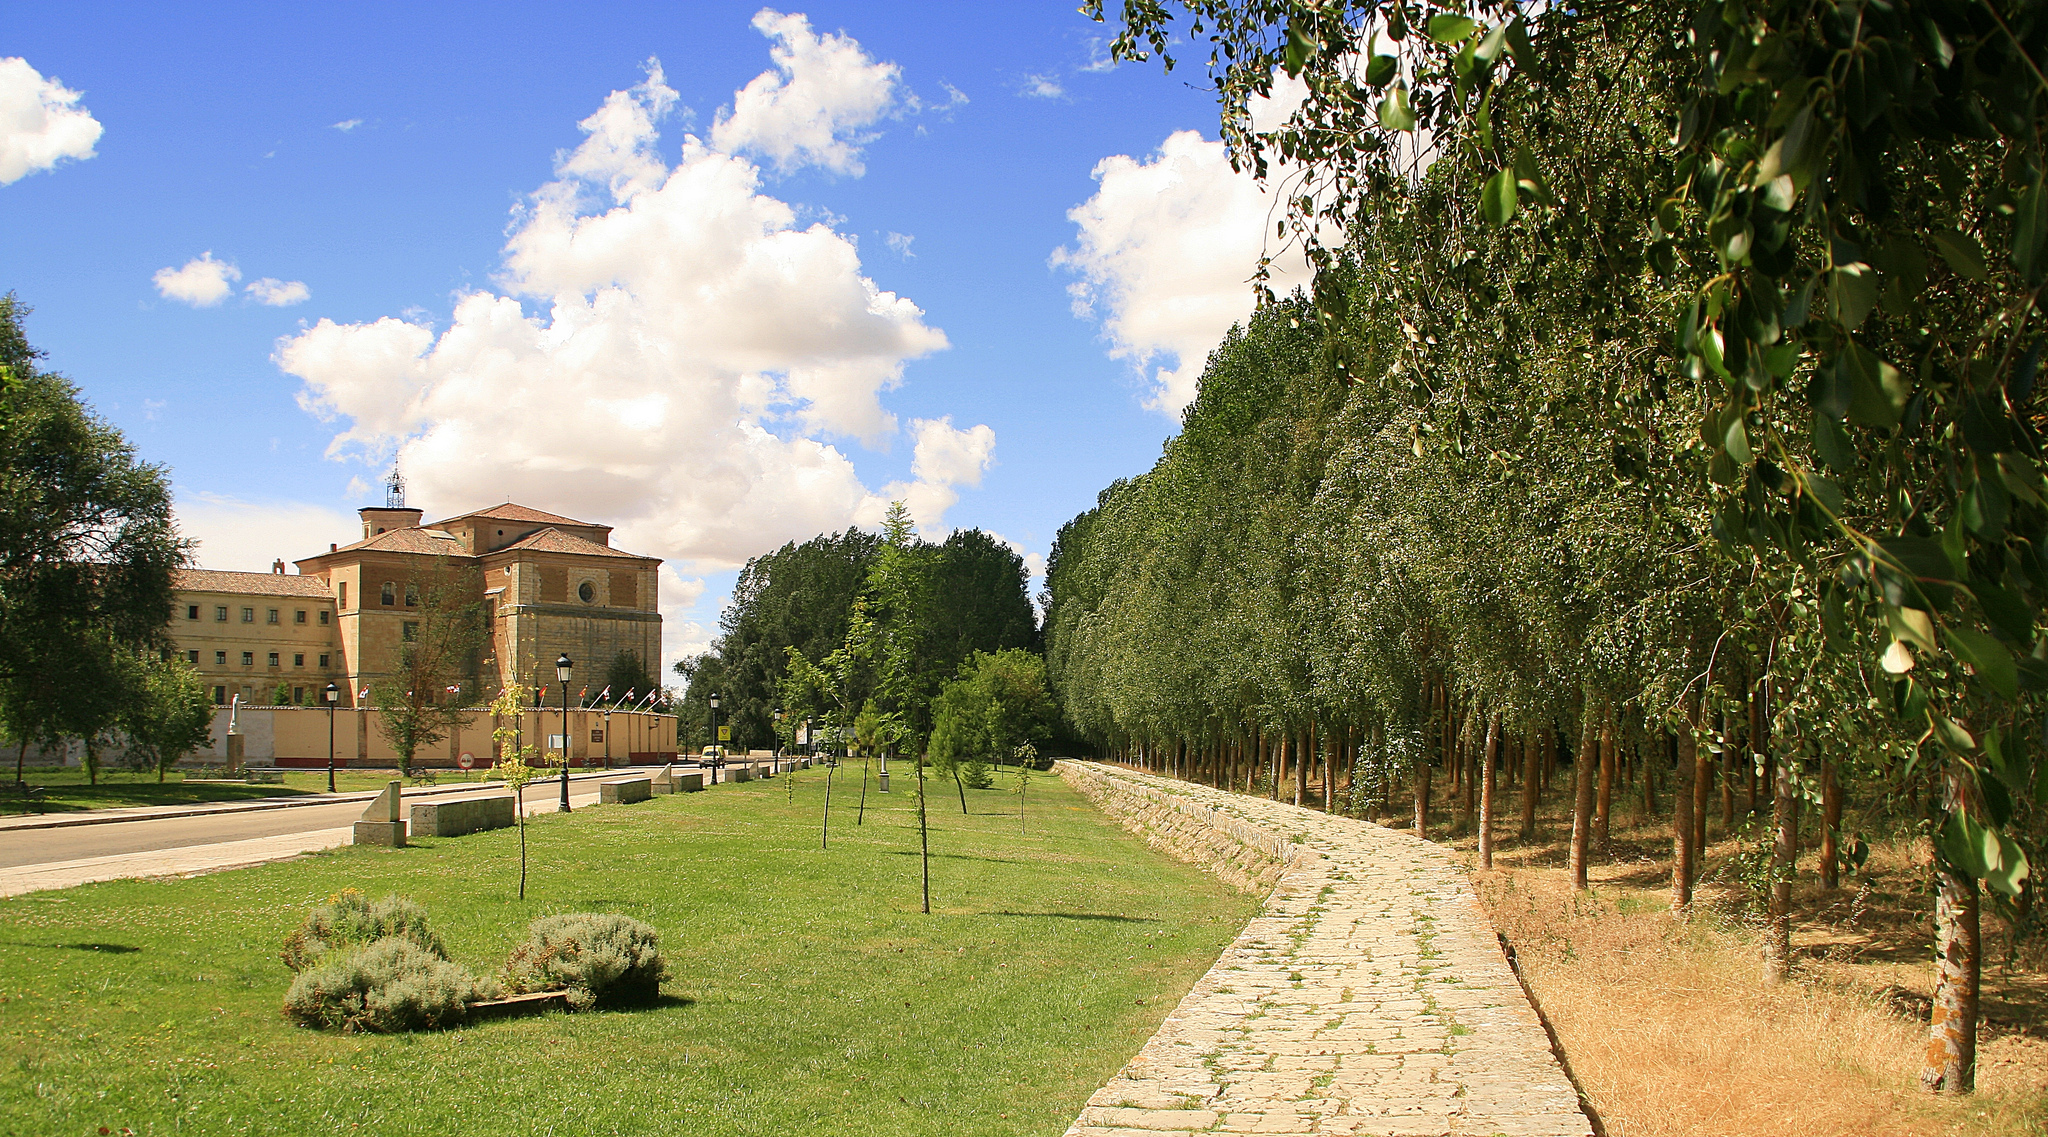 San Zoilo Monastery in the background during a sunny day surrounded by green trees